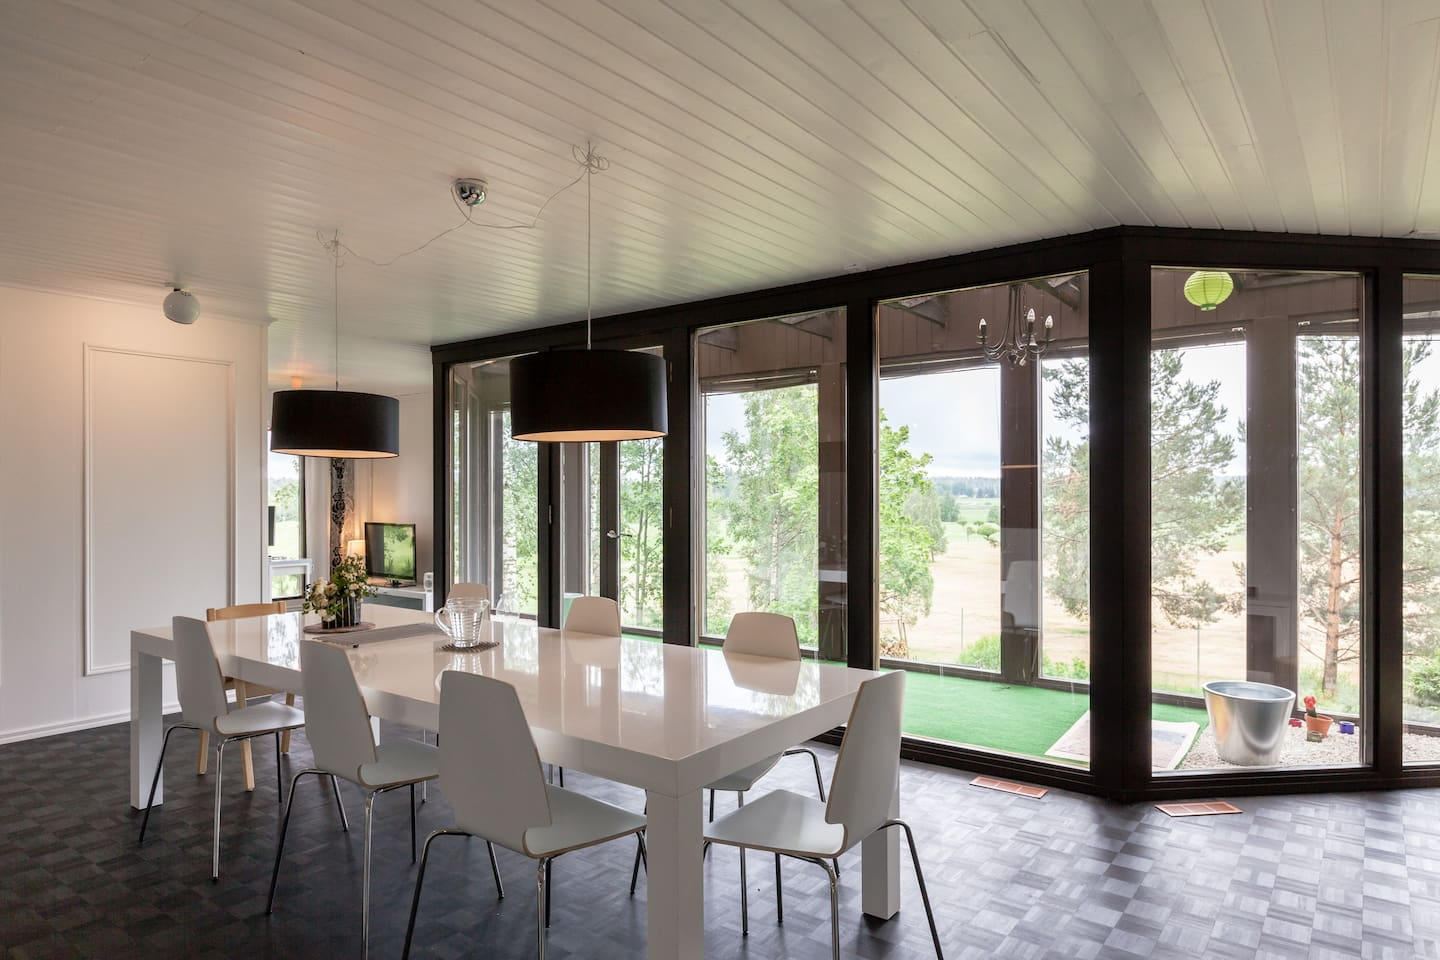 Dining room with a view to the golf course.